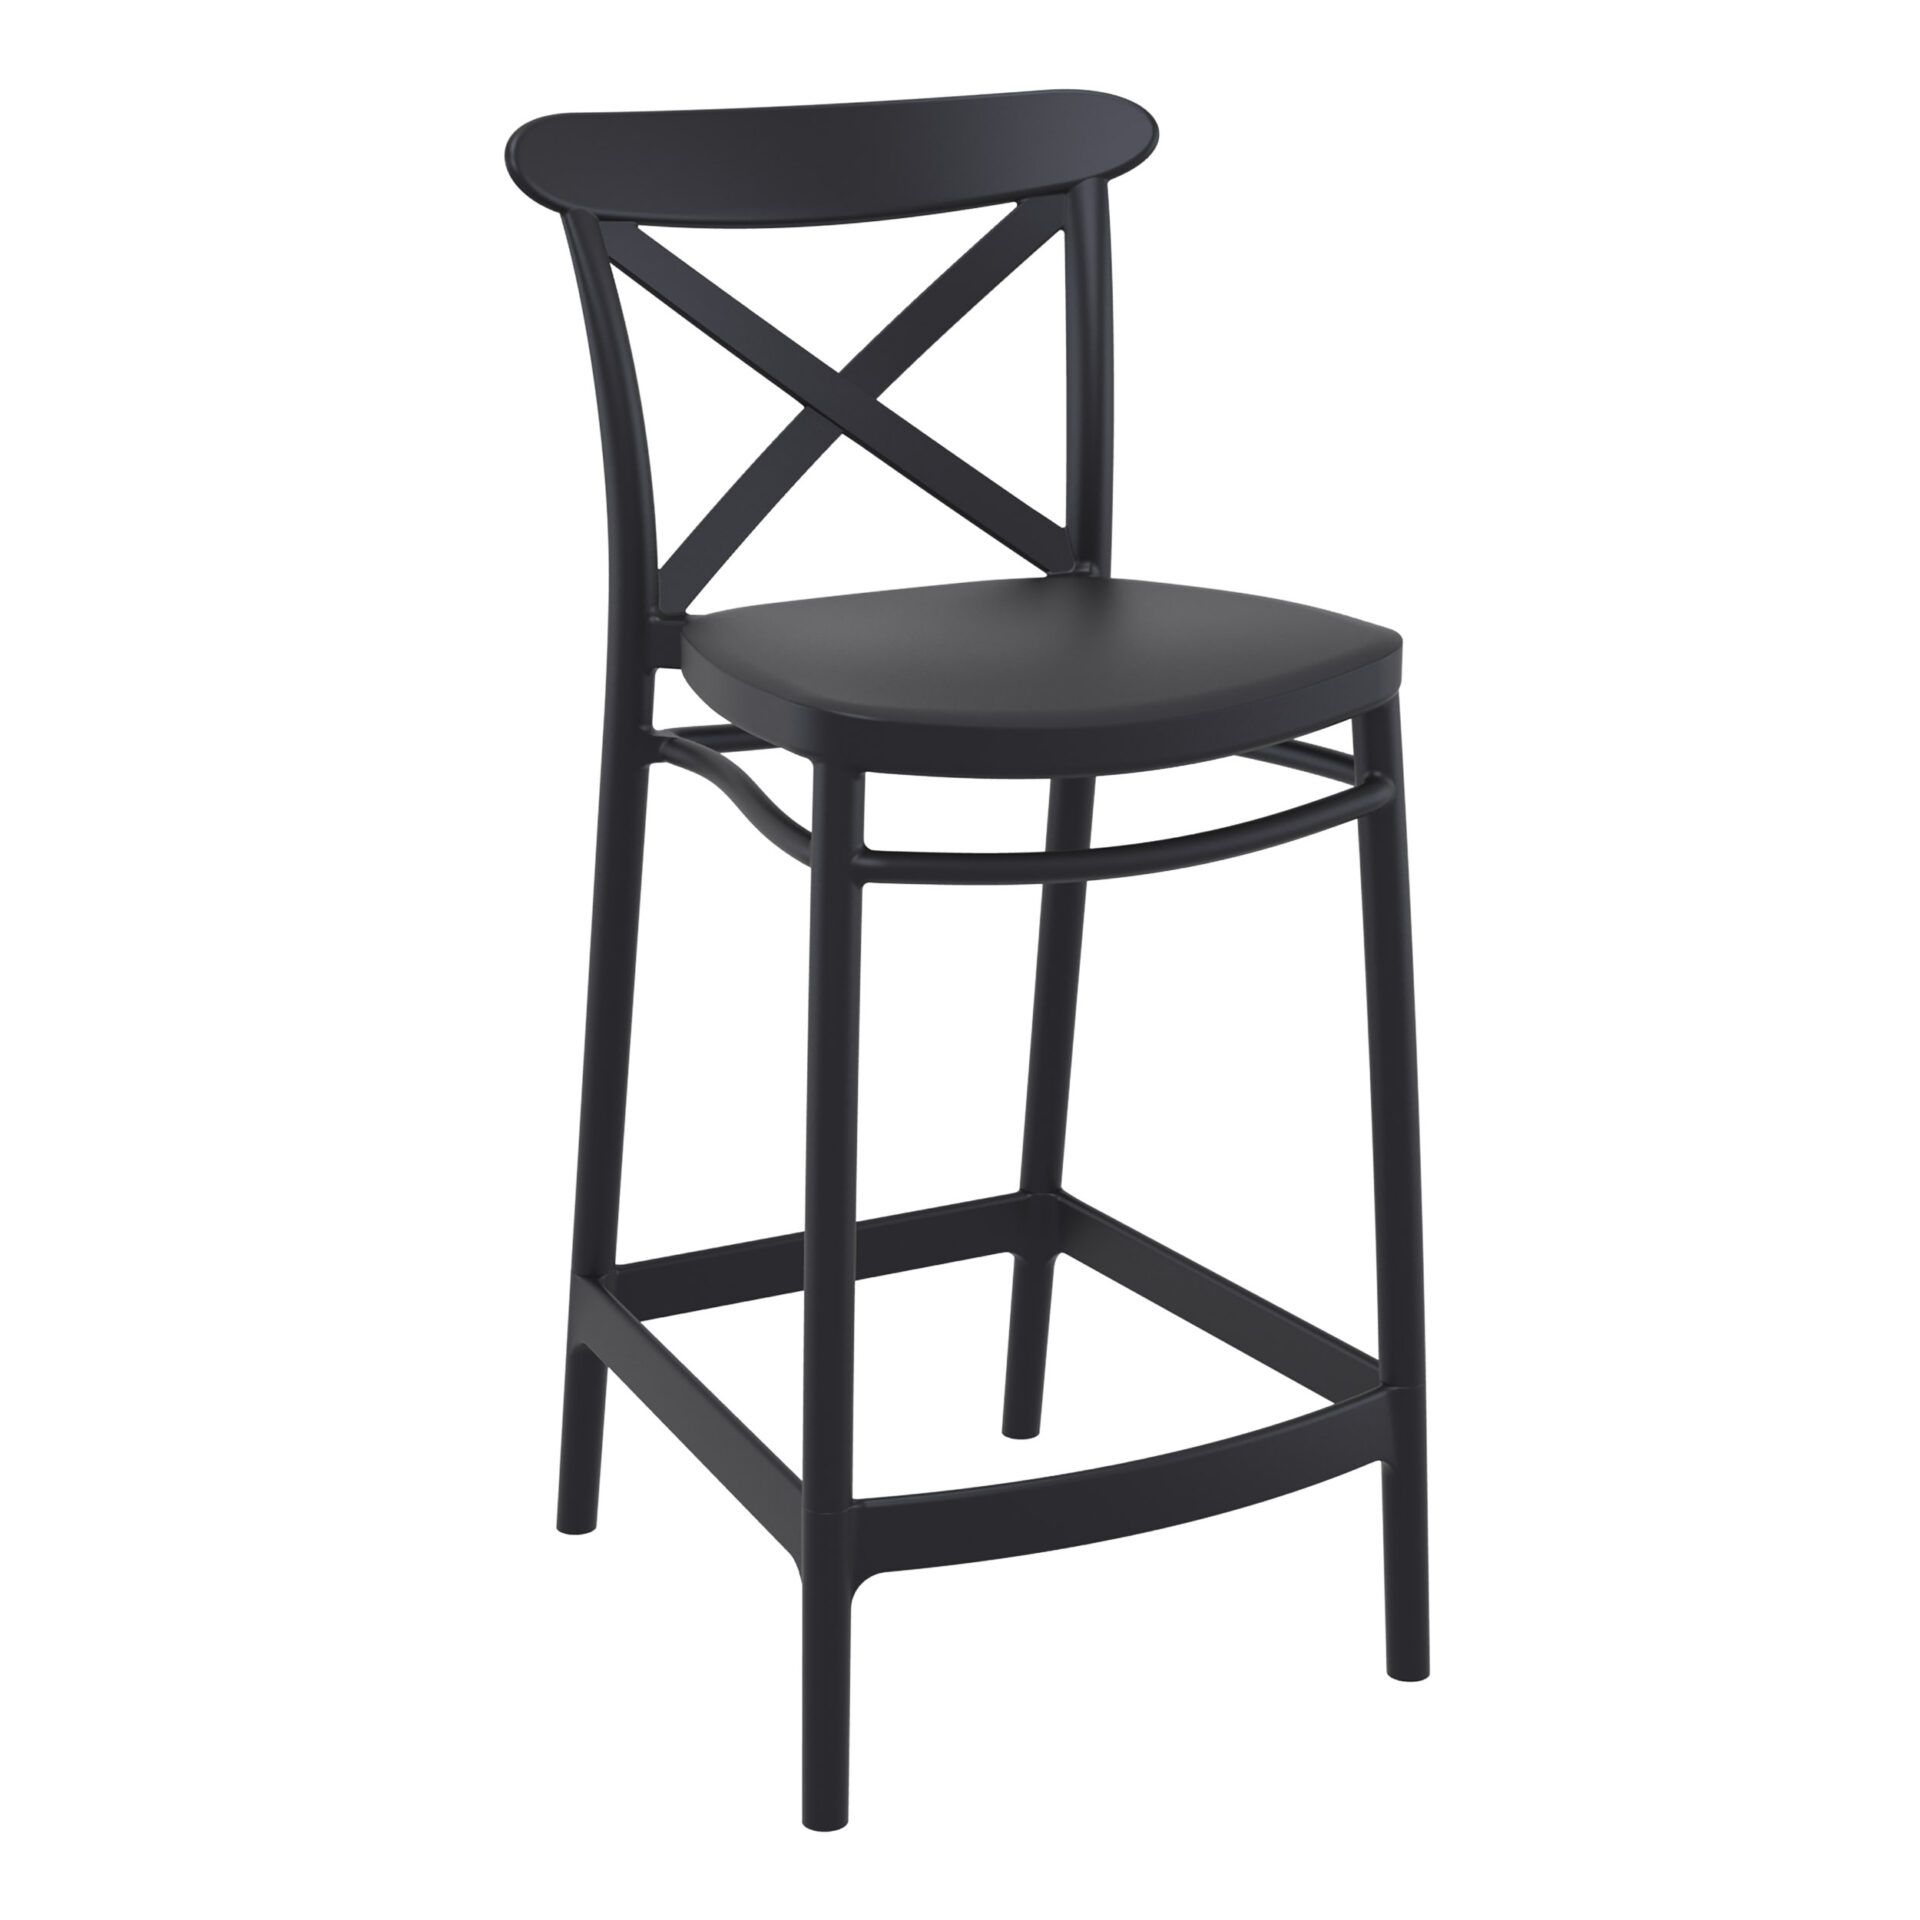 polypropylene bar cross barstool 65 black front side